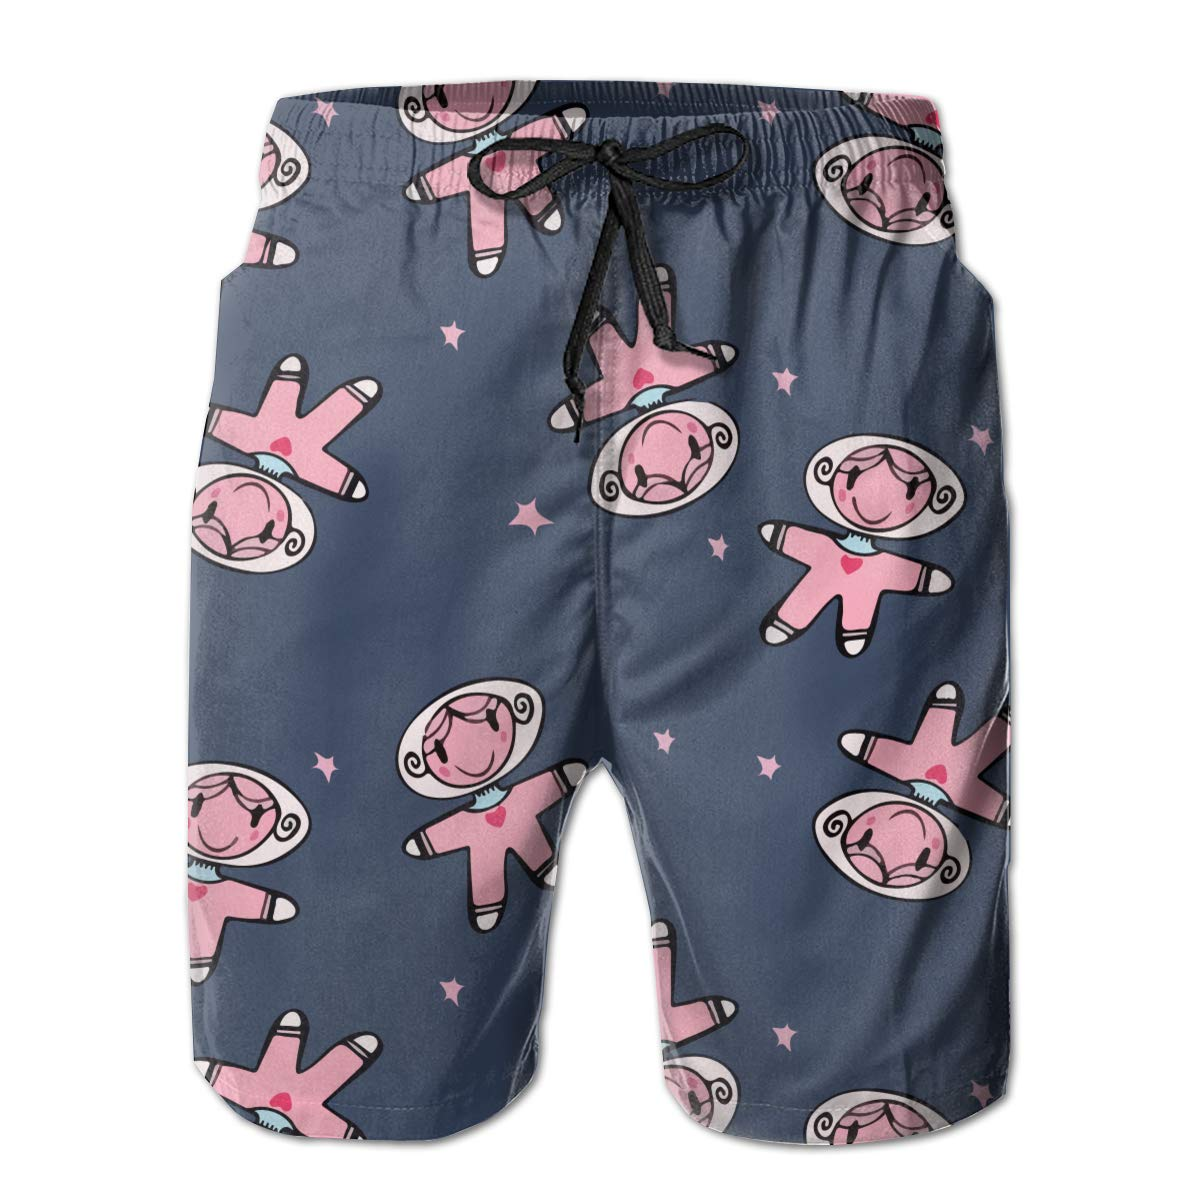 HZamora/_H Men Little Girl Dolls Adventure in Space Summer Breathable Quick-Drying Swim Trunks Beach Shorts Cargo Shorts XXL